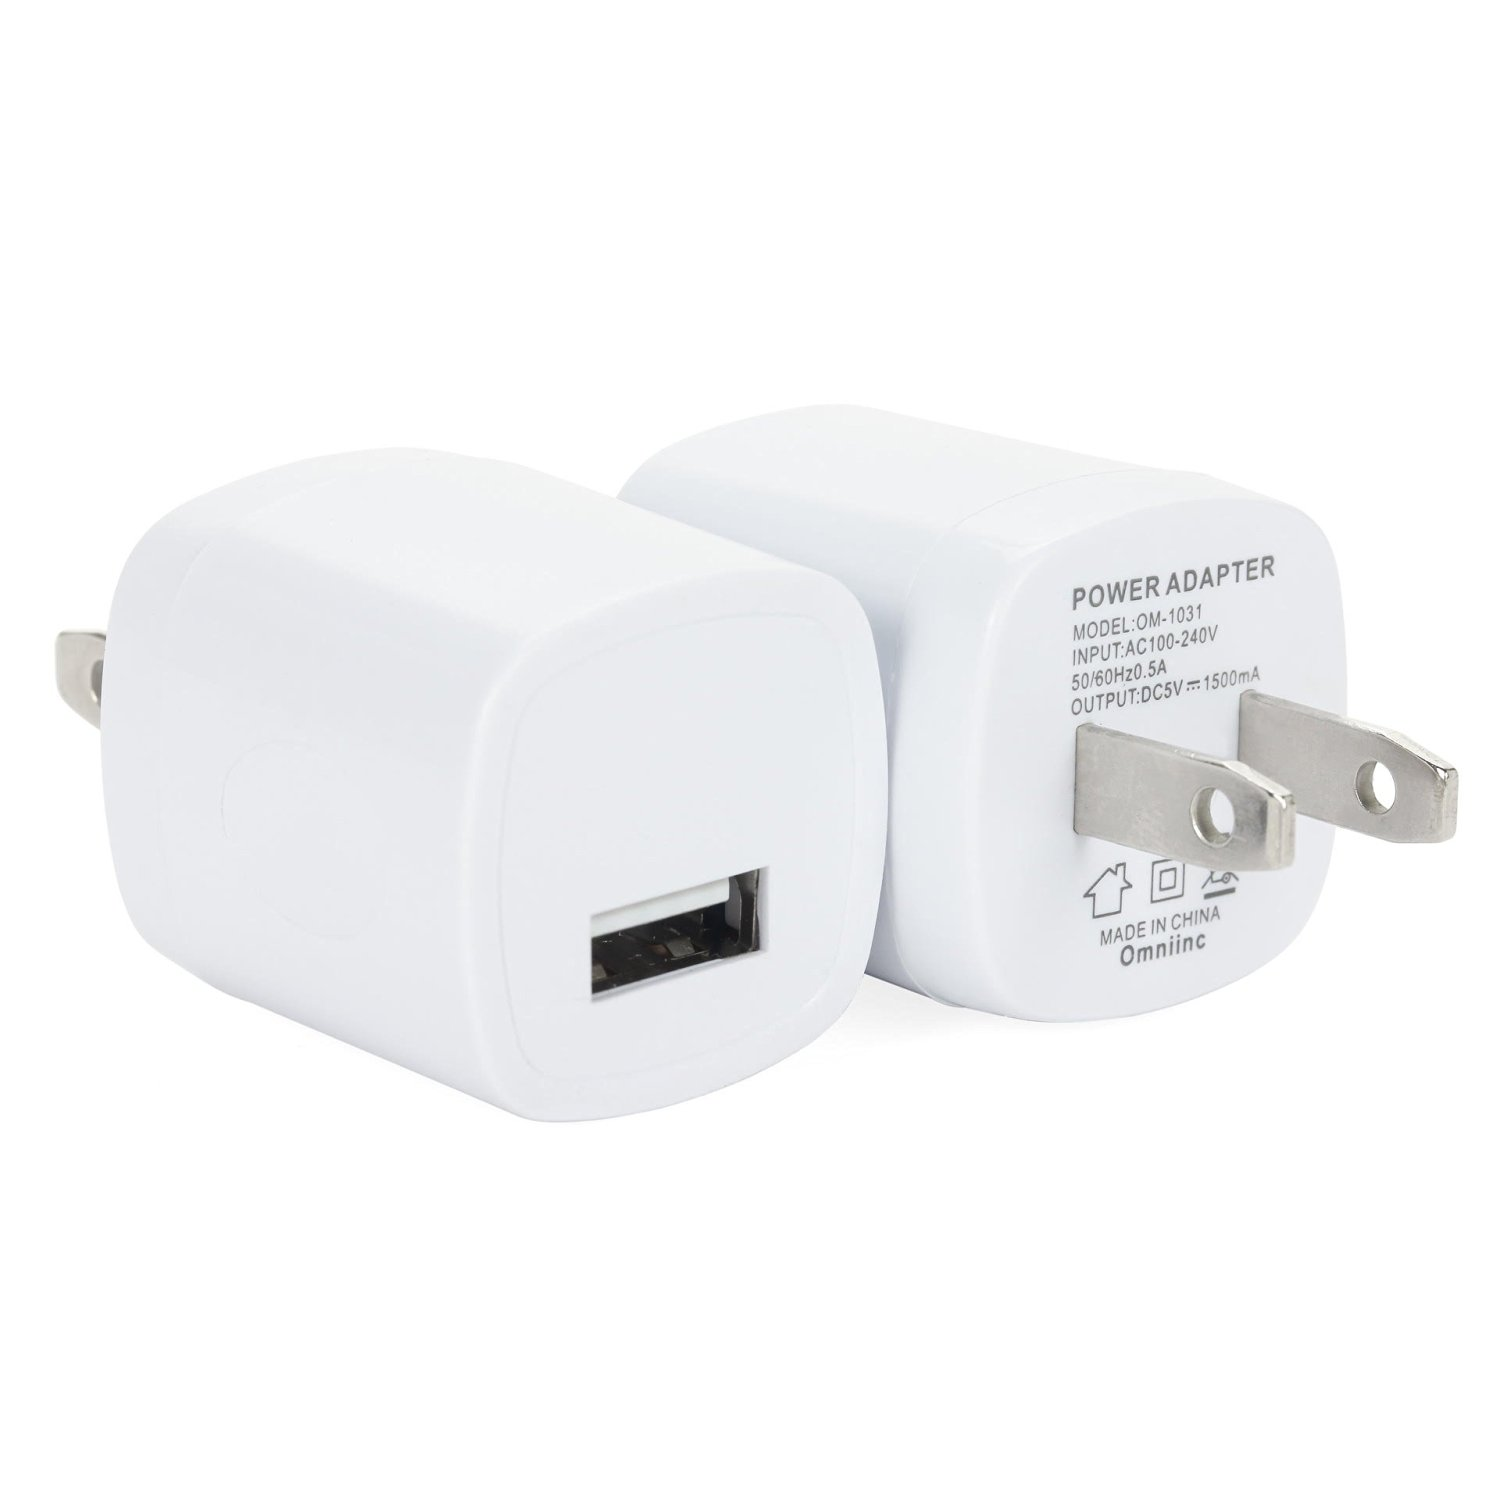 Omni INC 3PCS White Universal USB Port Colors USB AC/DC Power Adapter Home Wall Charger Plug W/ Easy Grip for iPhone 6/6 plus 5S 5 4S Samsung Galaxy S5 S4 ...